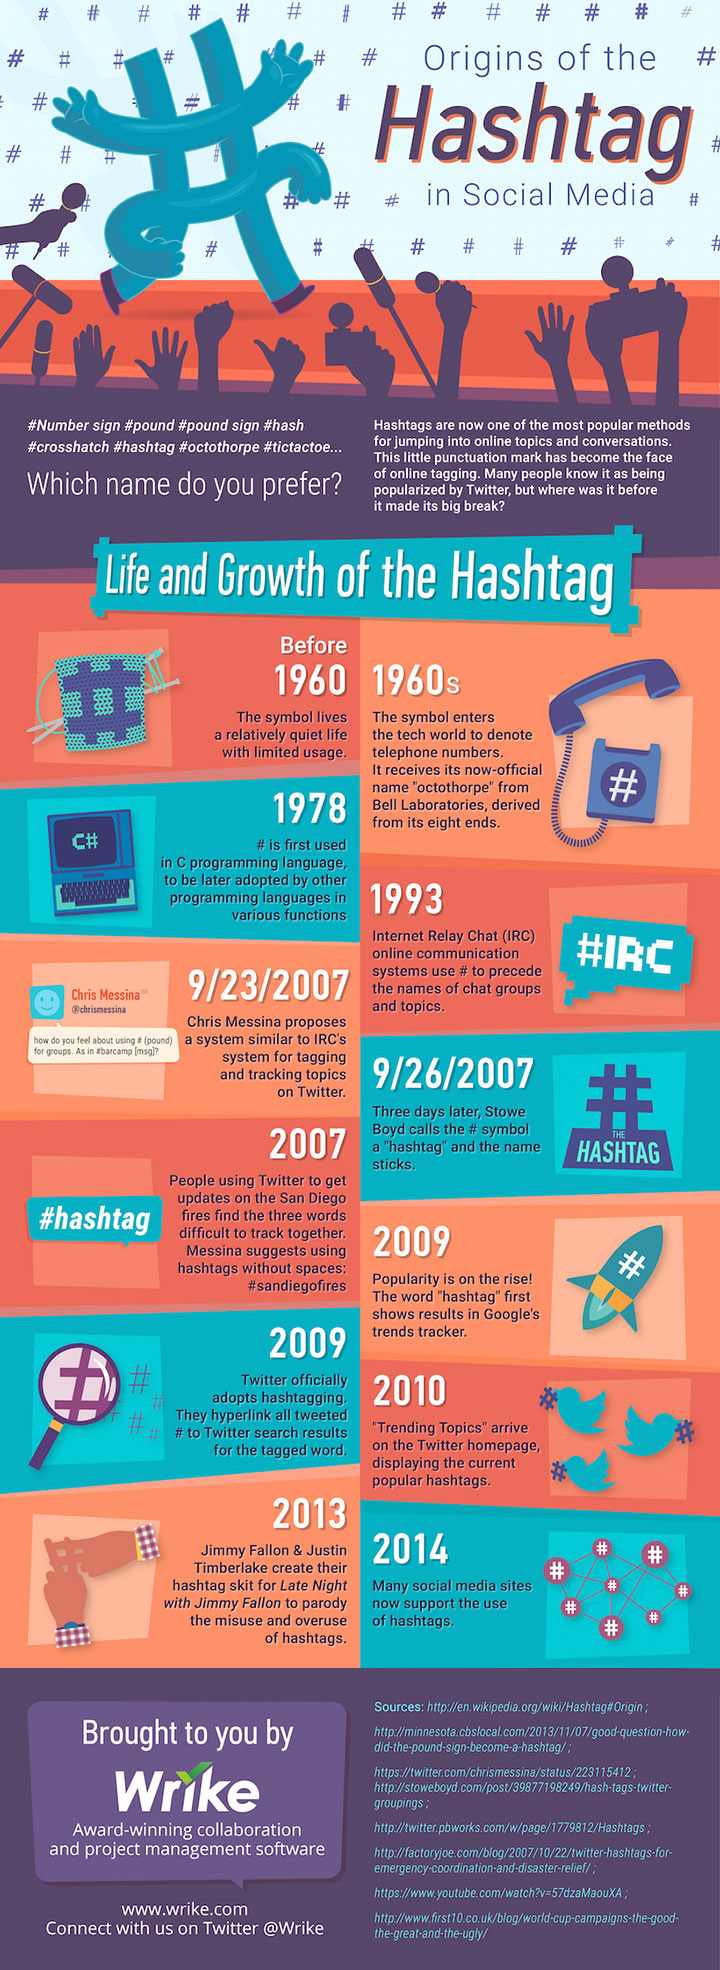 origin of the hashtag colorful infographic.